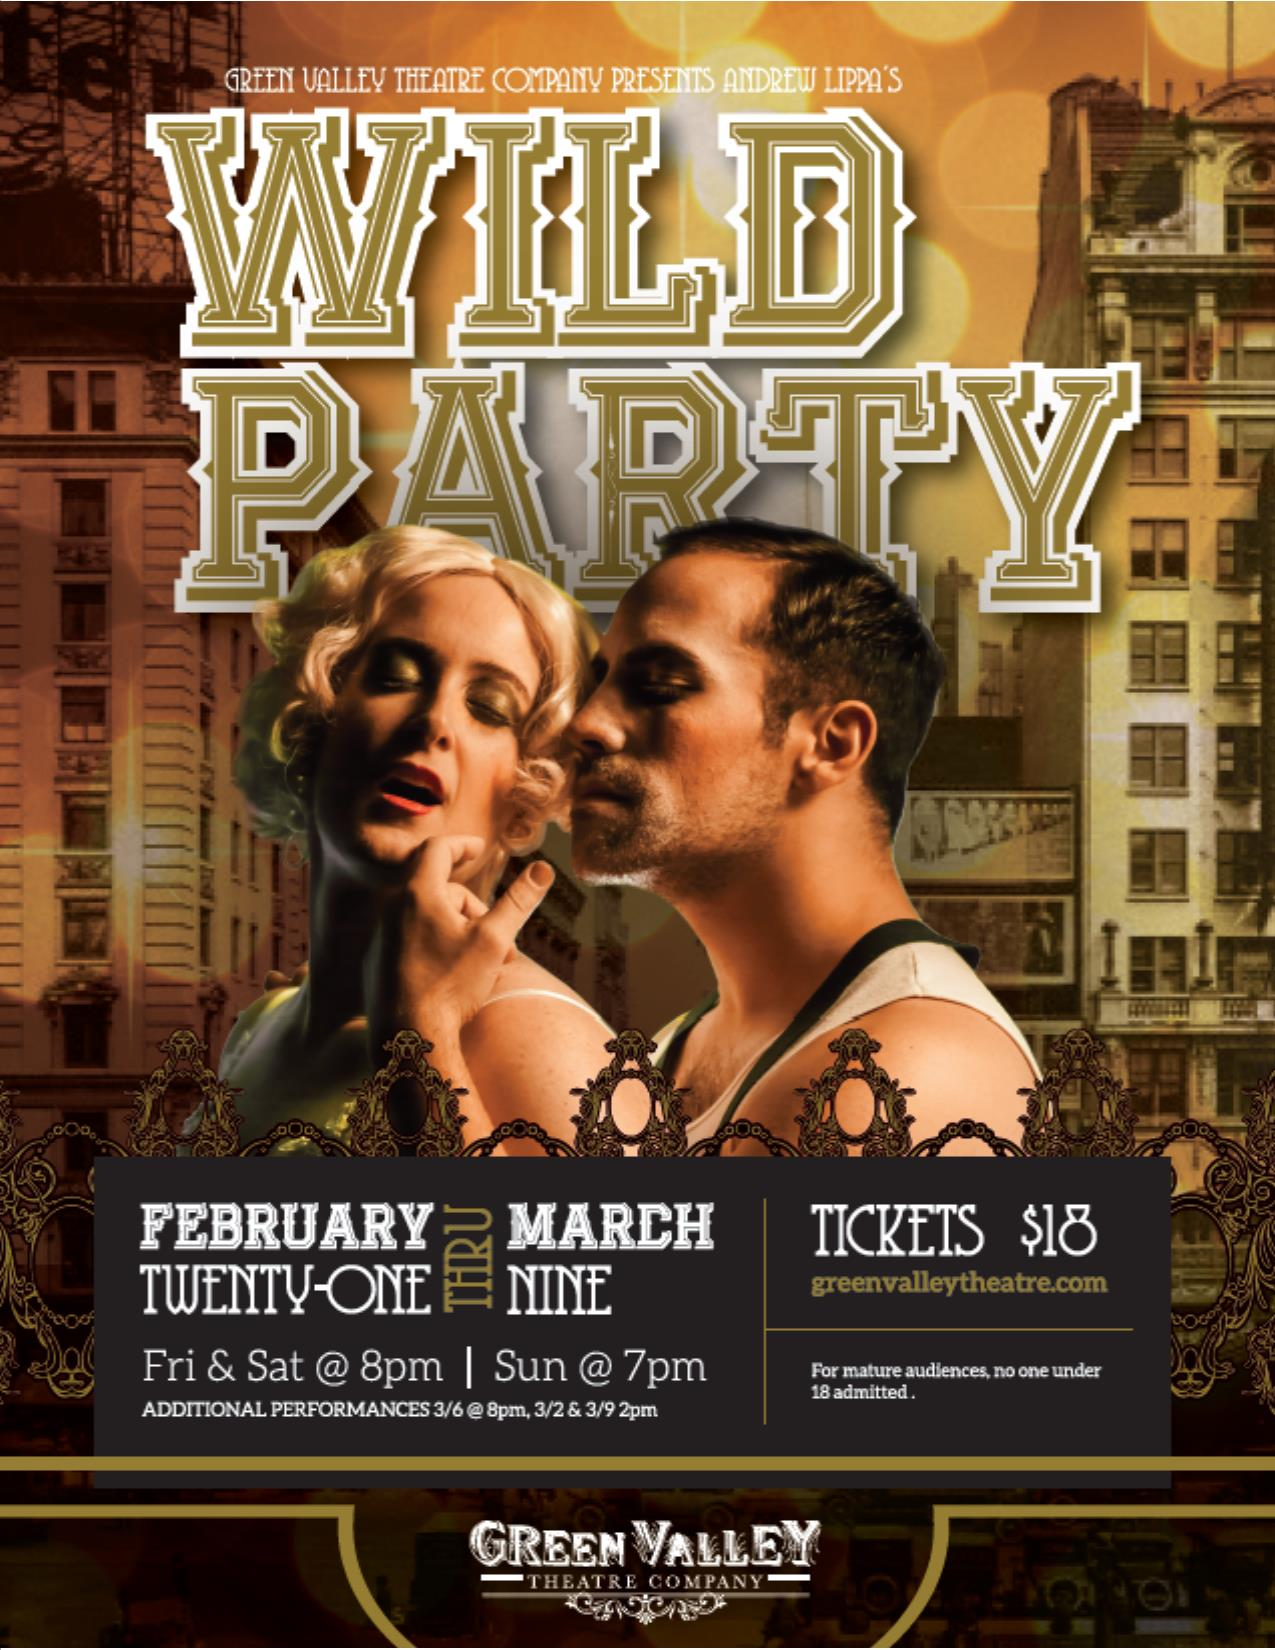 Wild Party - February 21st-March 9thExplore